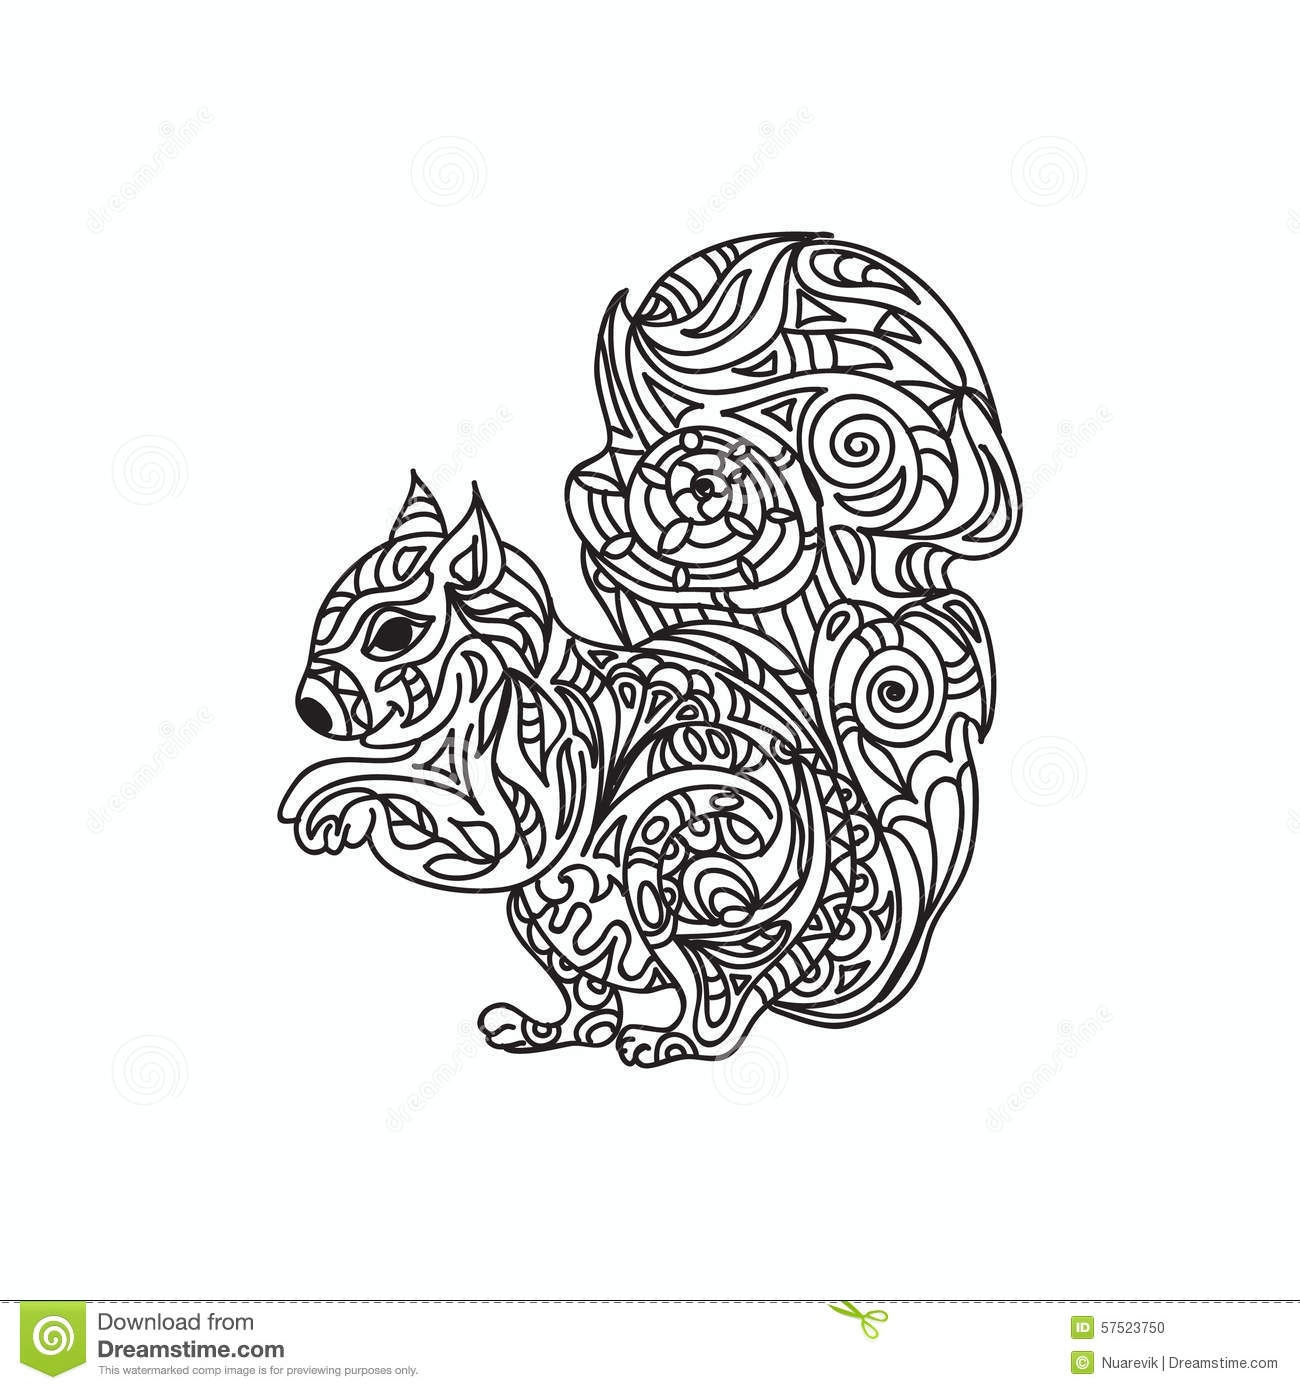 toucan coloring page - stock illustration squirrel coloring page isolated white image